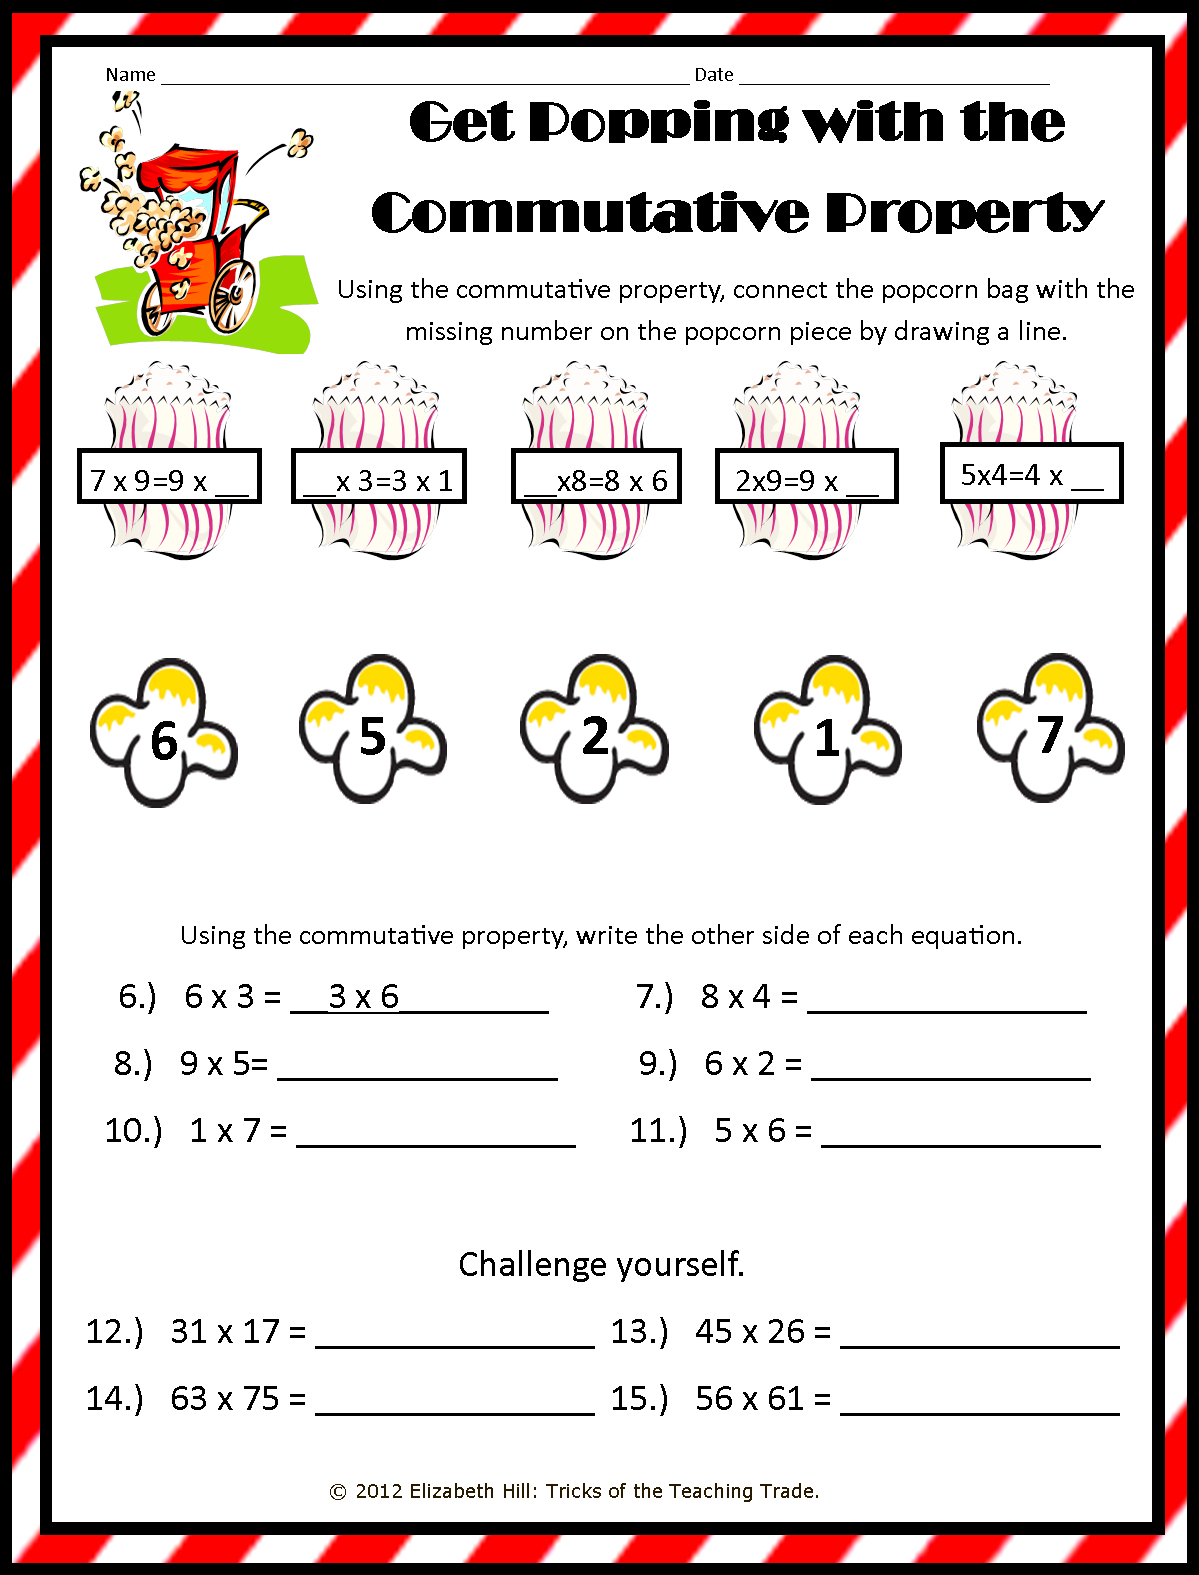 Commutative Property Multiplication Worksheets  Cmediadrivers With Regard To Associative Property Of Addition Worksheets 3Rd Grade